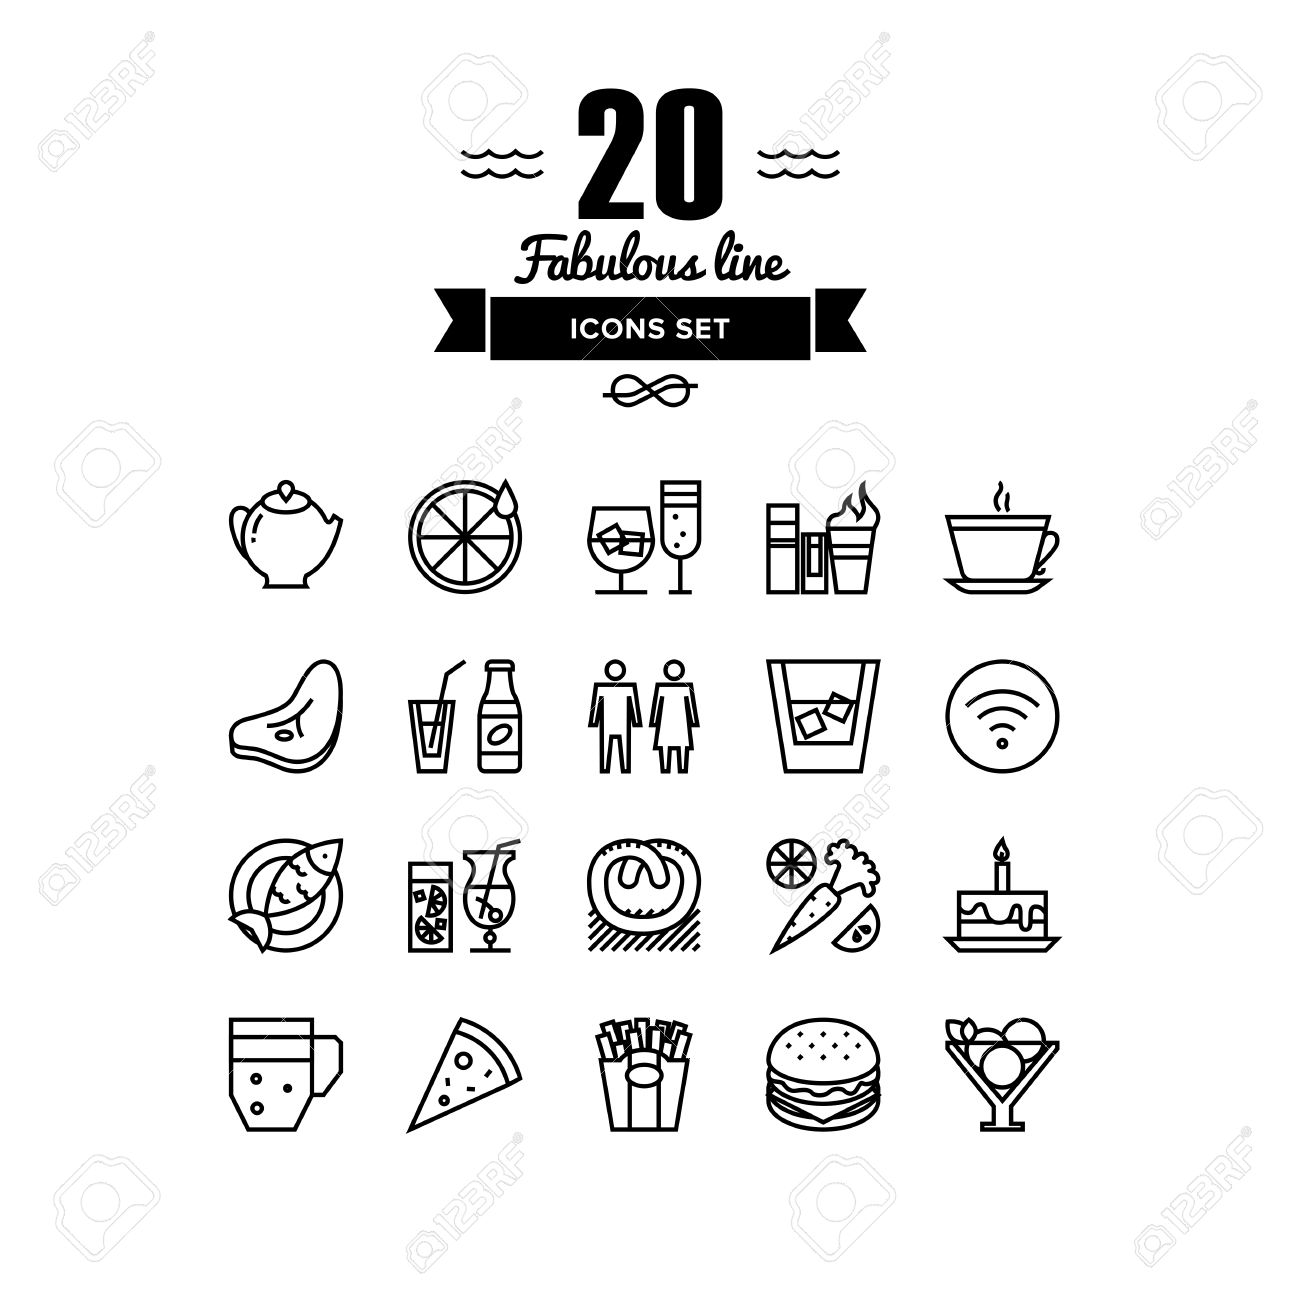 thin lines icons set of restaurant food and beverages, cafe menu